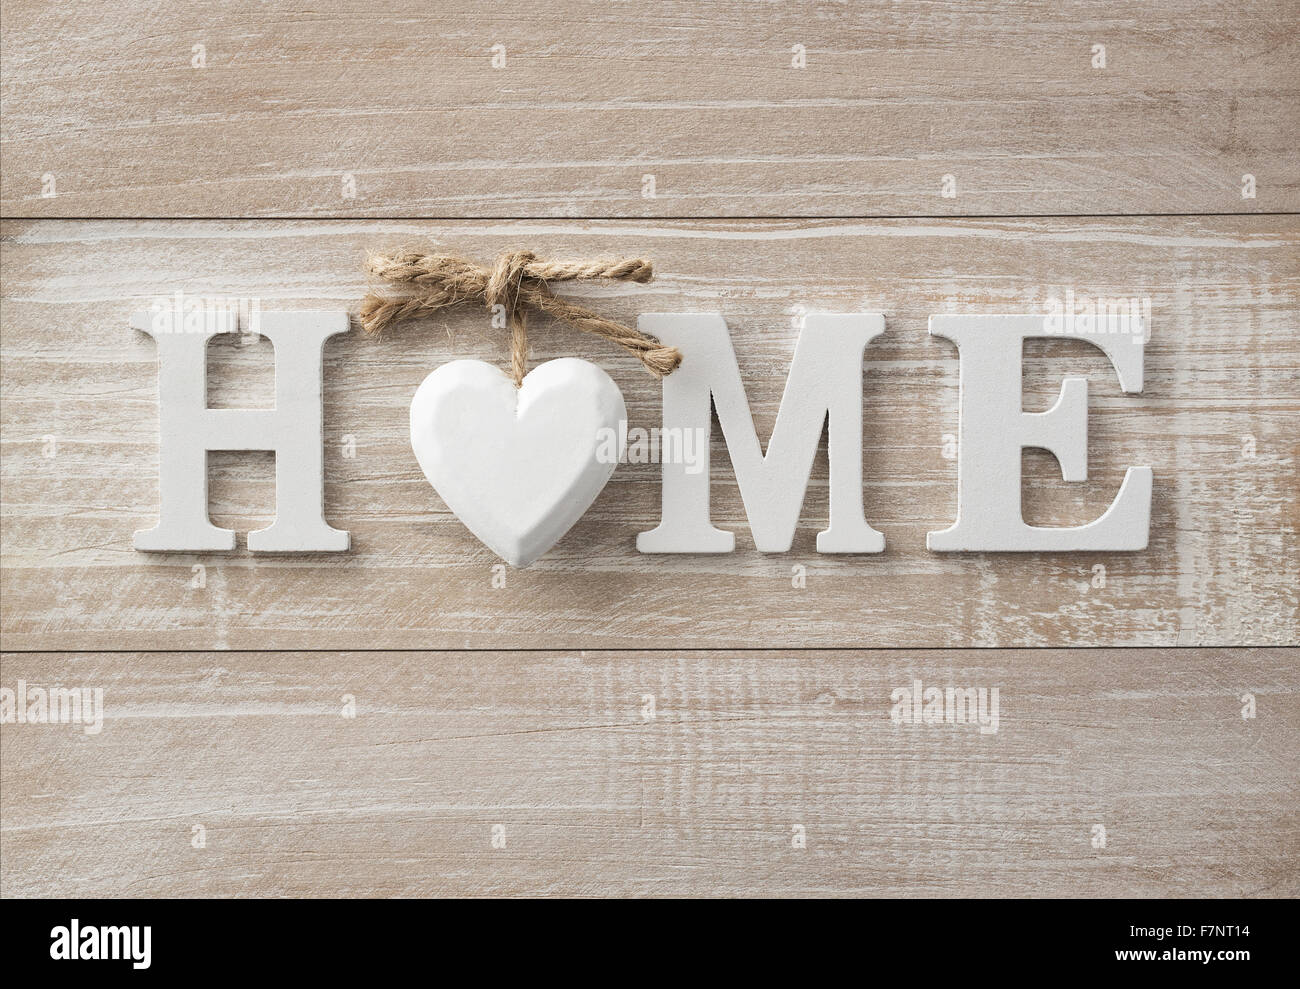 Home sweet home, wooden text on vintage board - Stock Image